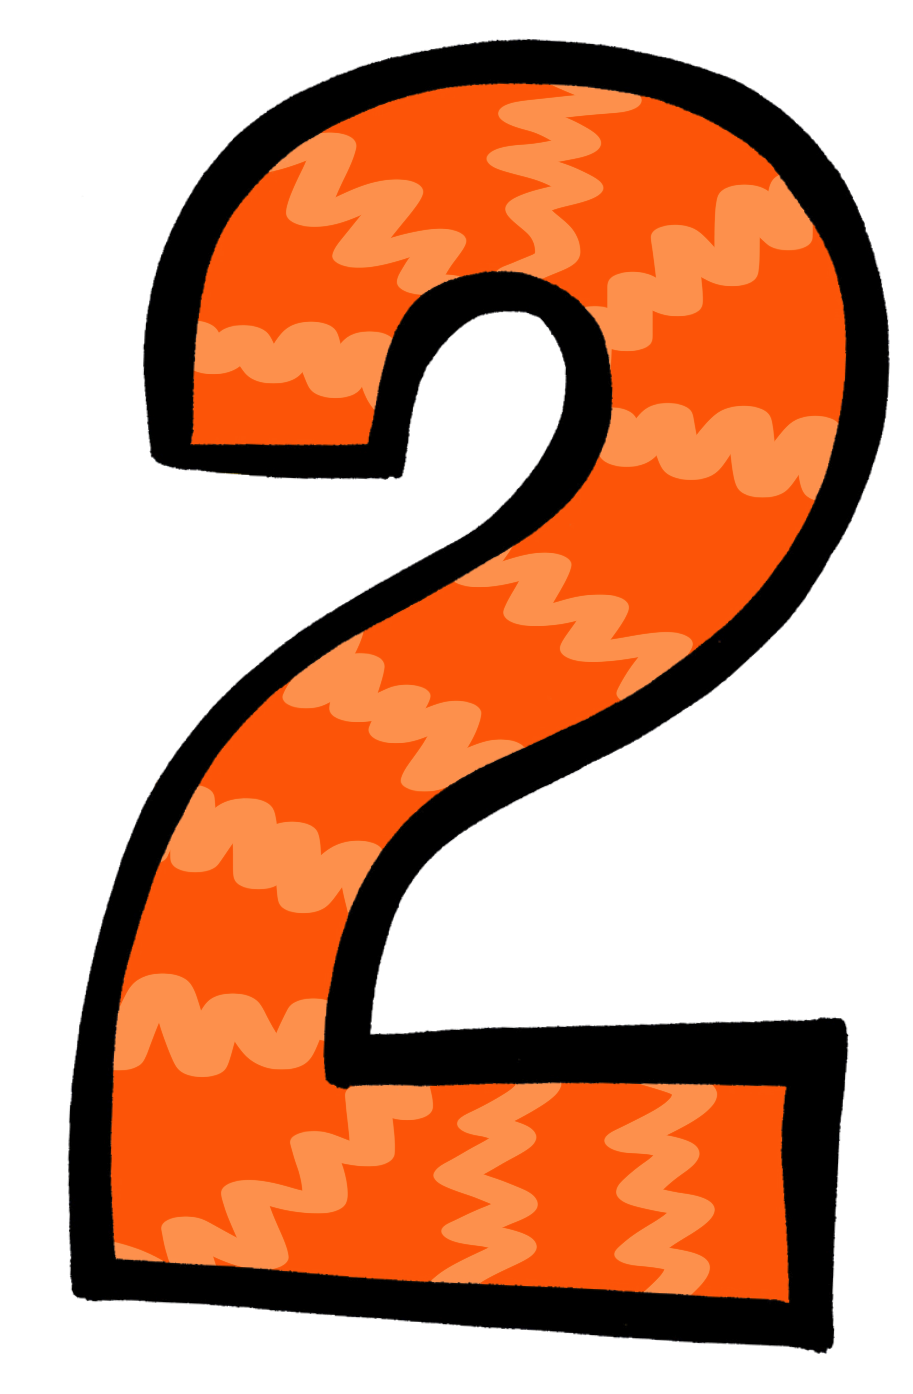 Number 2 clipart orange. Images image gallery